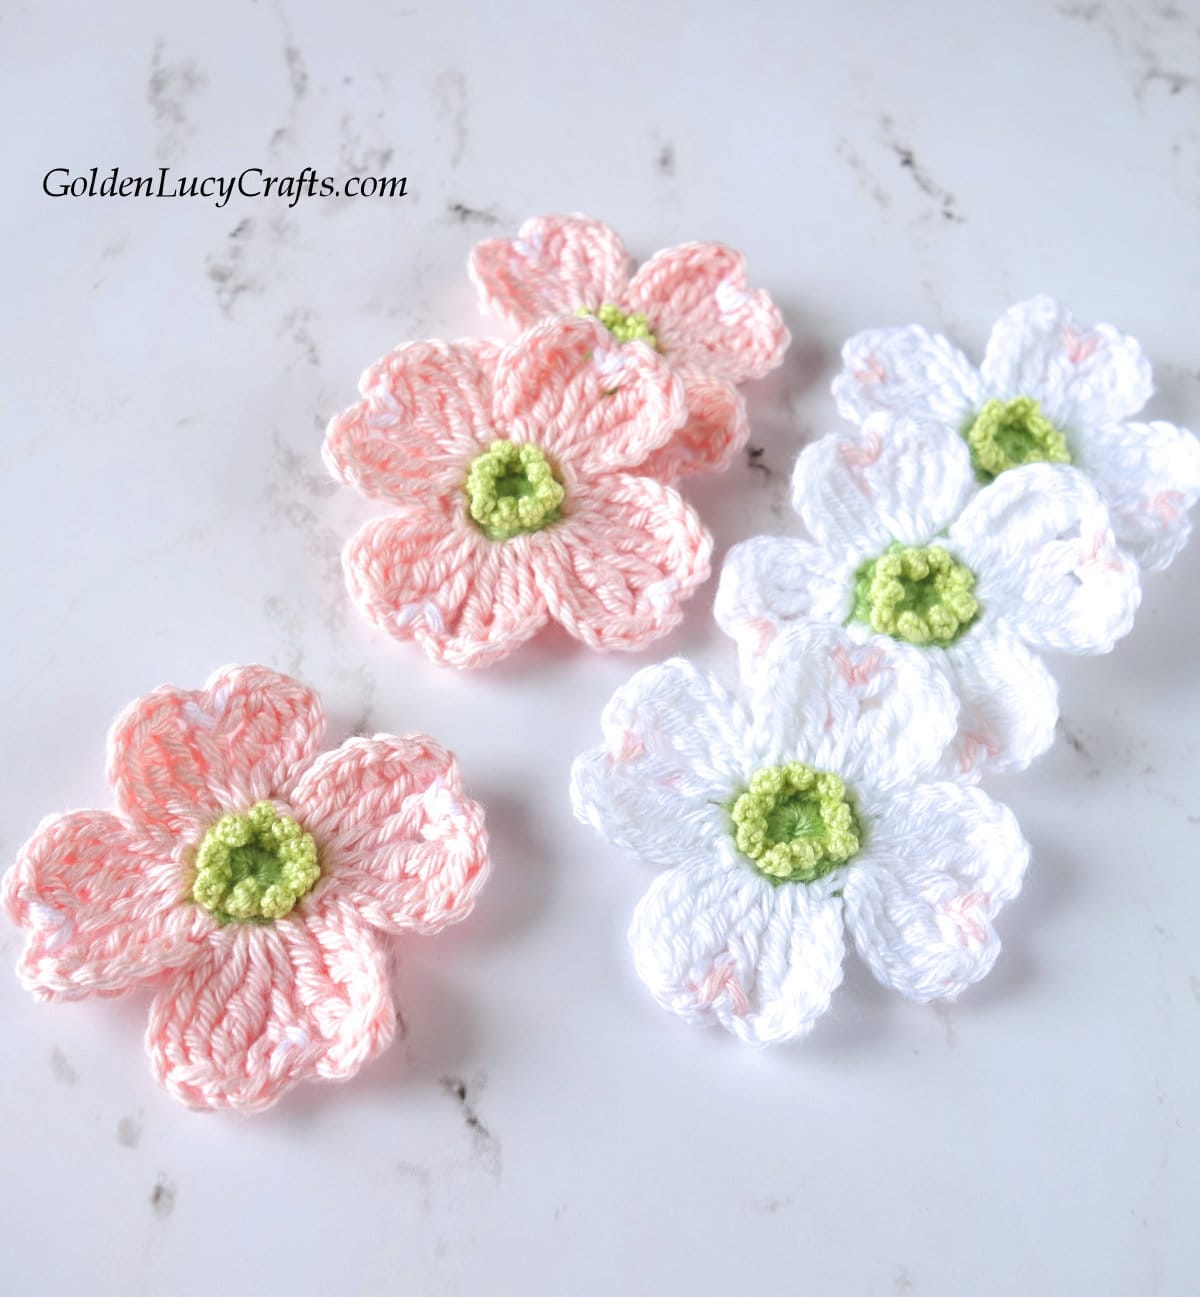 Crochet pink and white dogwood flowers.